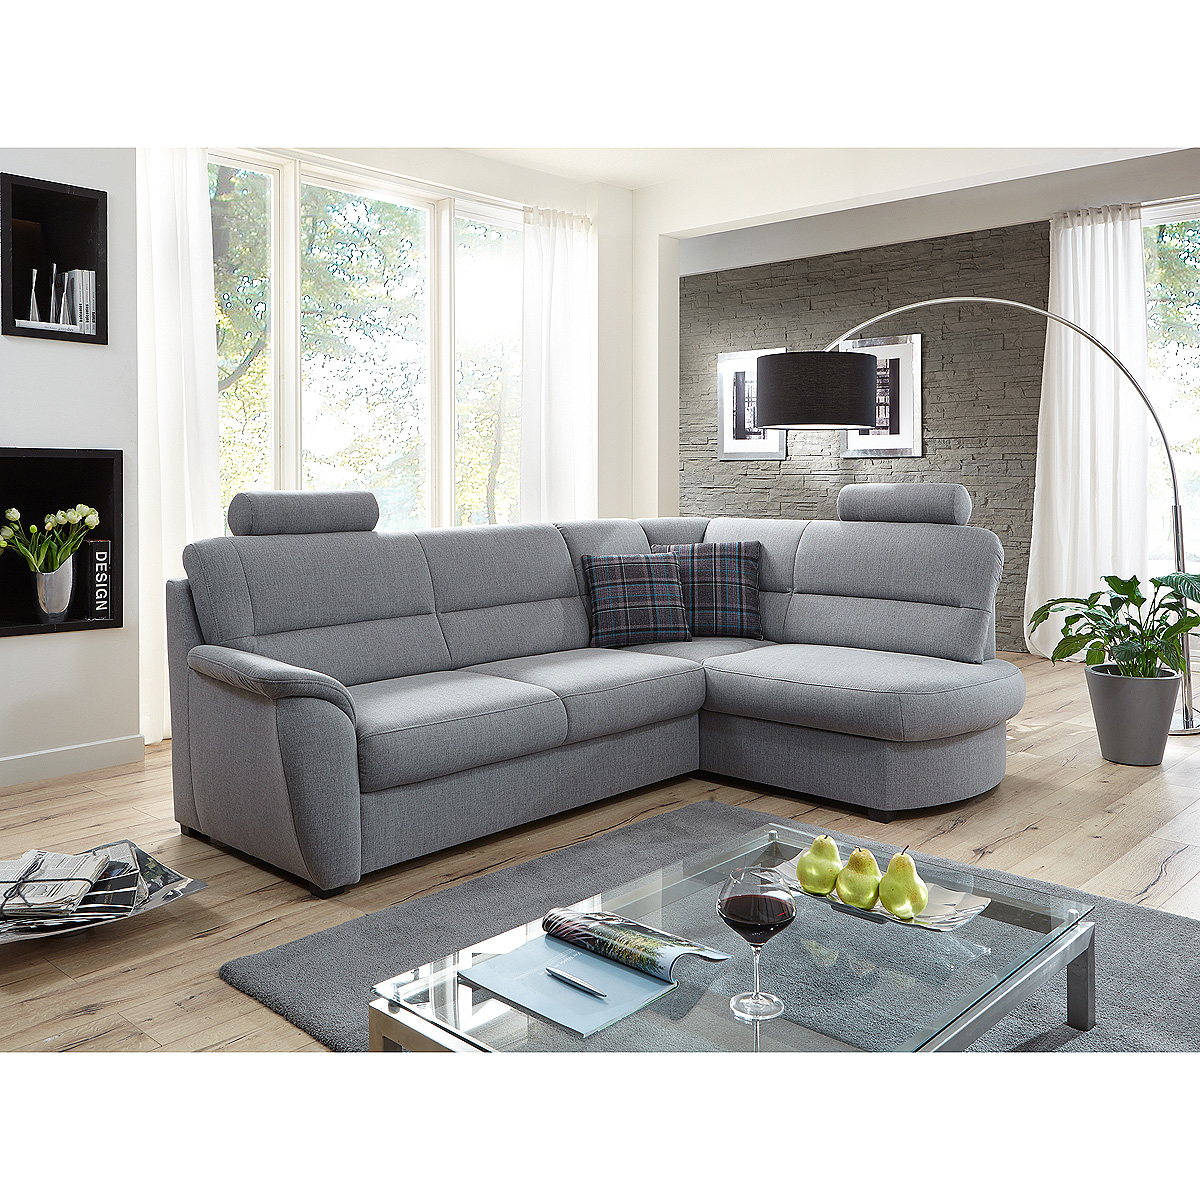 ecksofa pandoras sofa wohnlandschaft polsterm bel in hellgrau 251. Black Bedroom Furniture Sets. Home Design Ideas